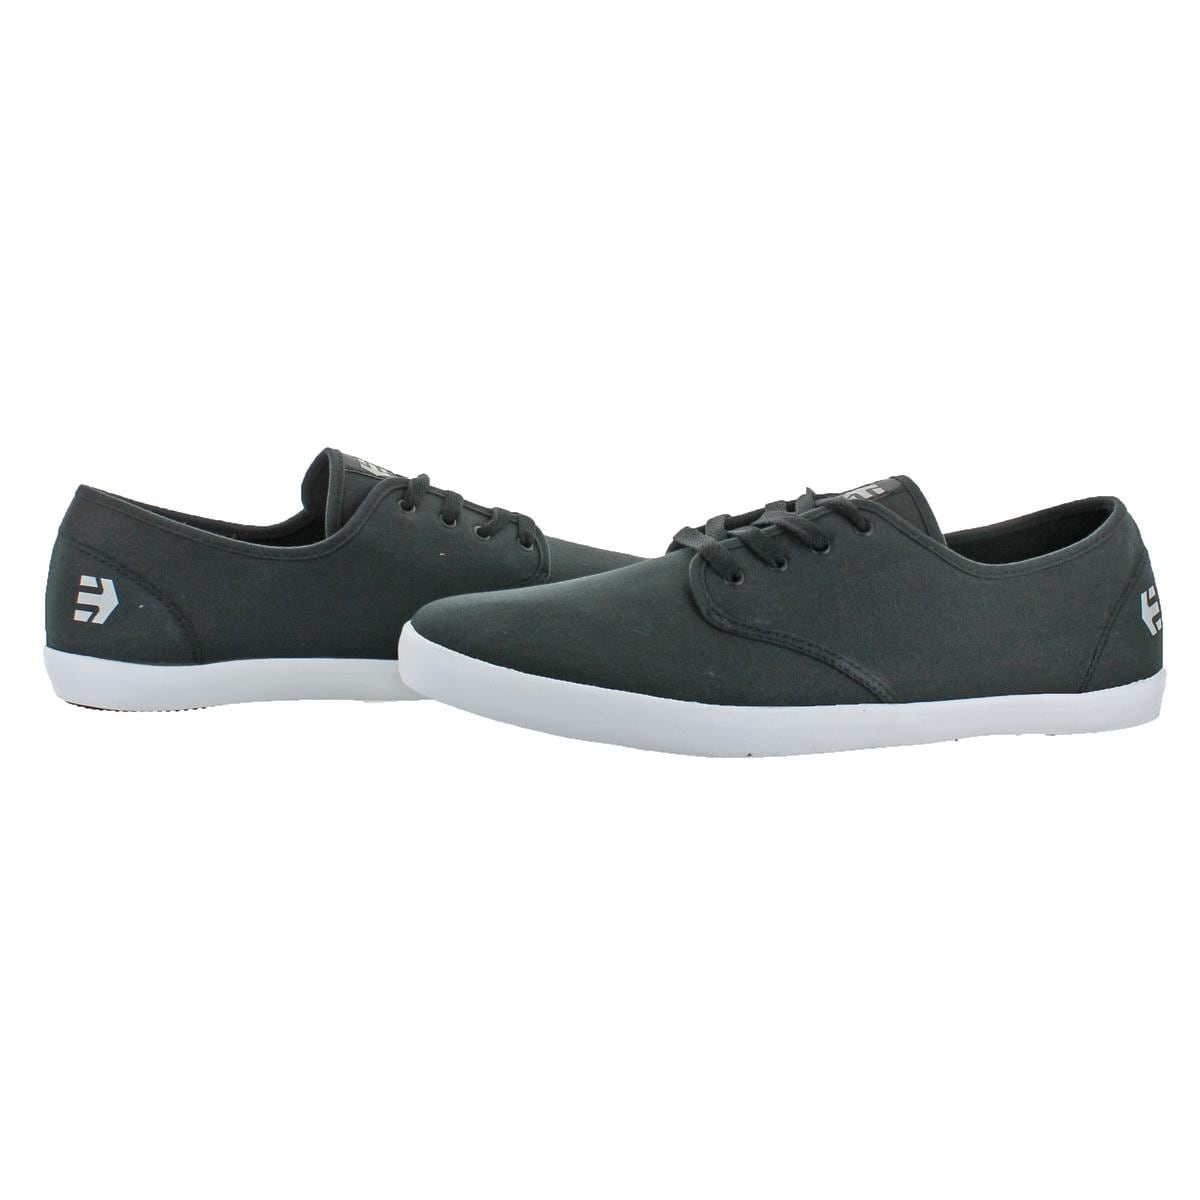 Etnies Patrol Mens Black Canvas Athletic Lace Up Skate Shoes